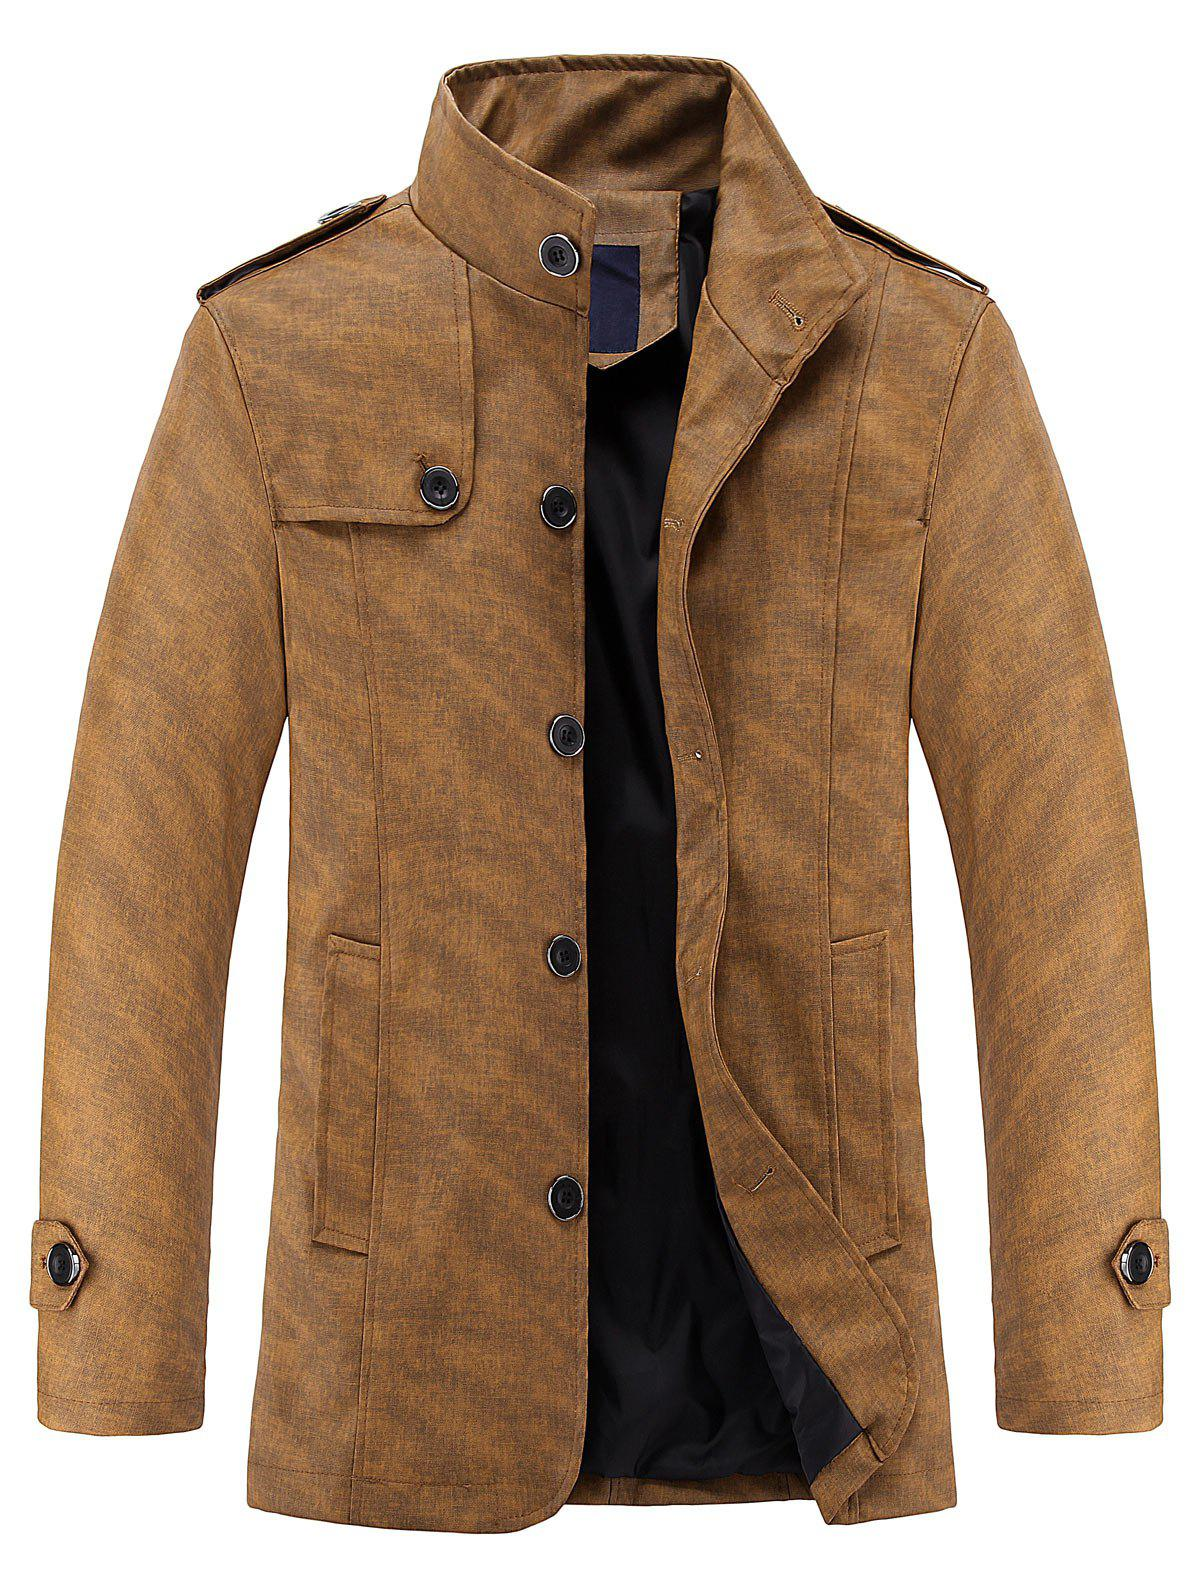 Stand Collar Casual PU Leather Jacket - KHAKI 3XL